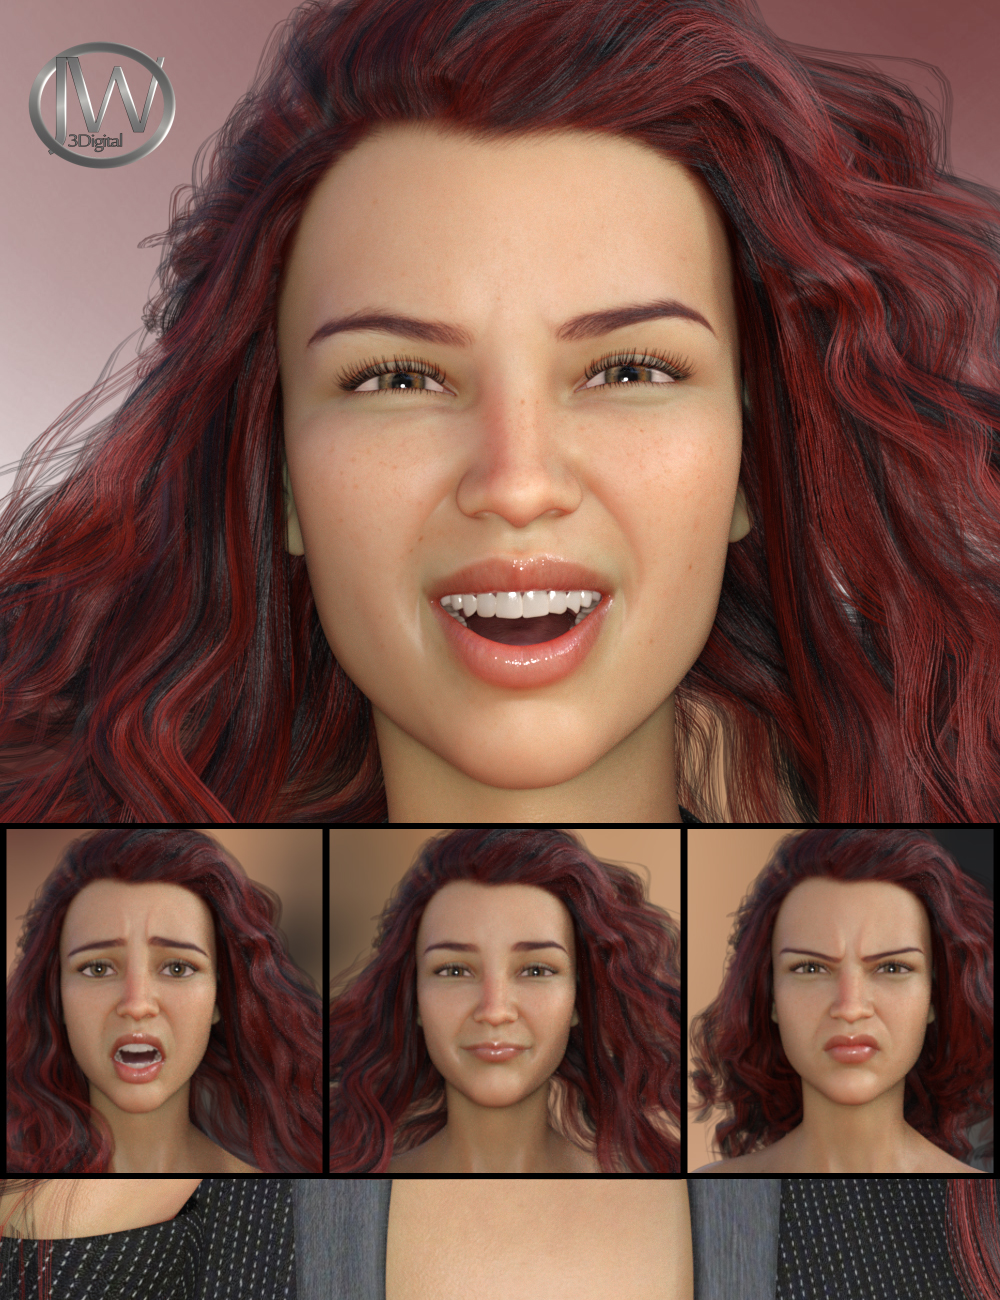 Her Emotions - Expressions for Genesis 8 Female(s) and Charlotte 8 by: JWolf, 3D Models by Daz 3D